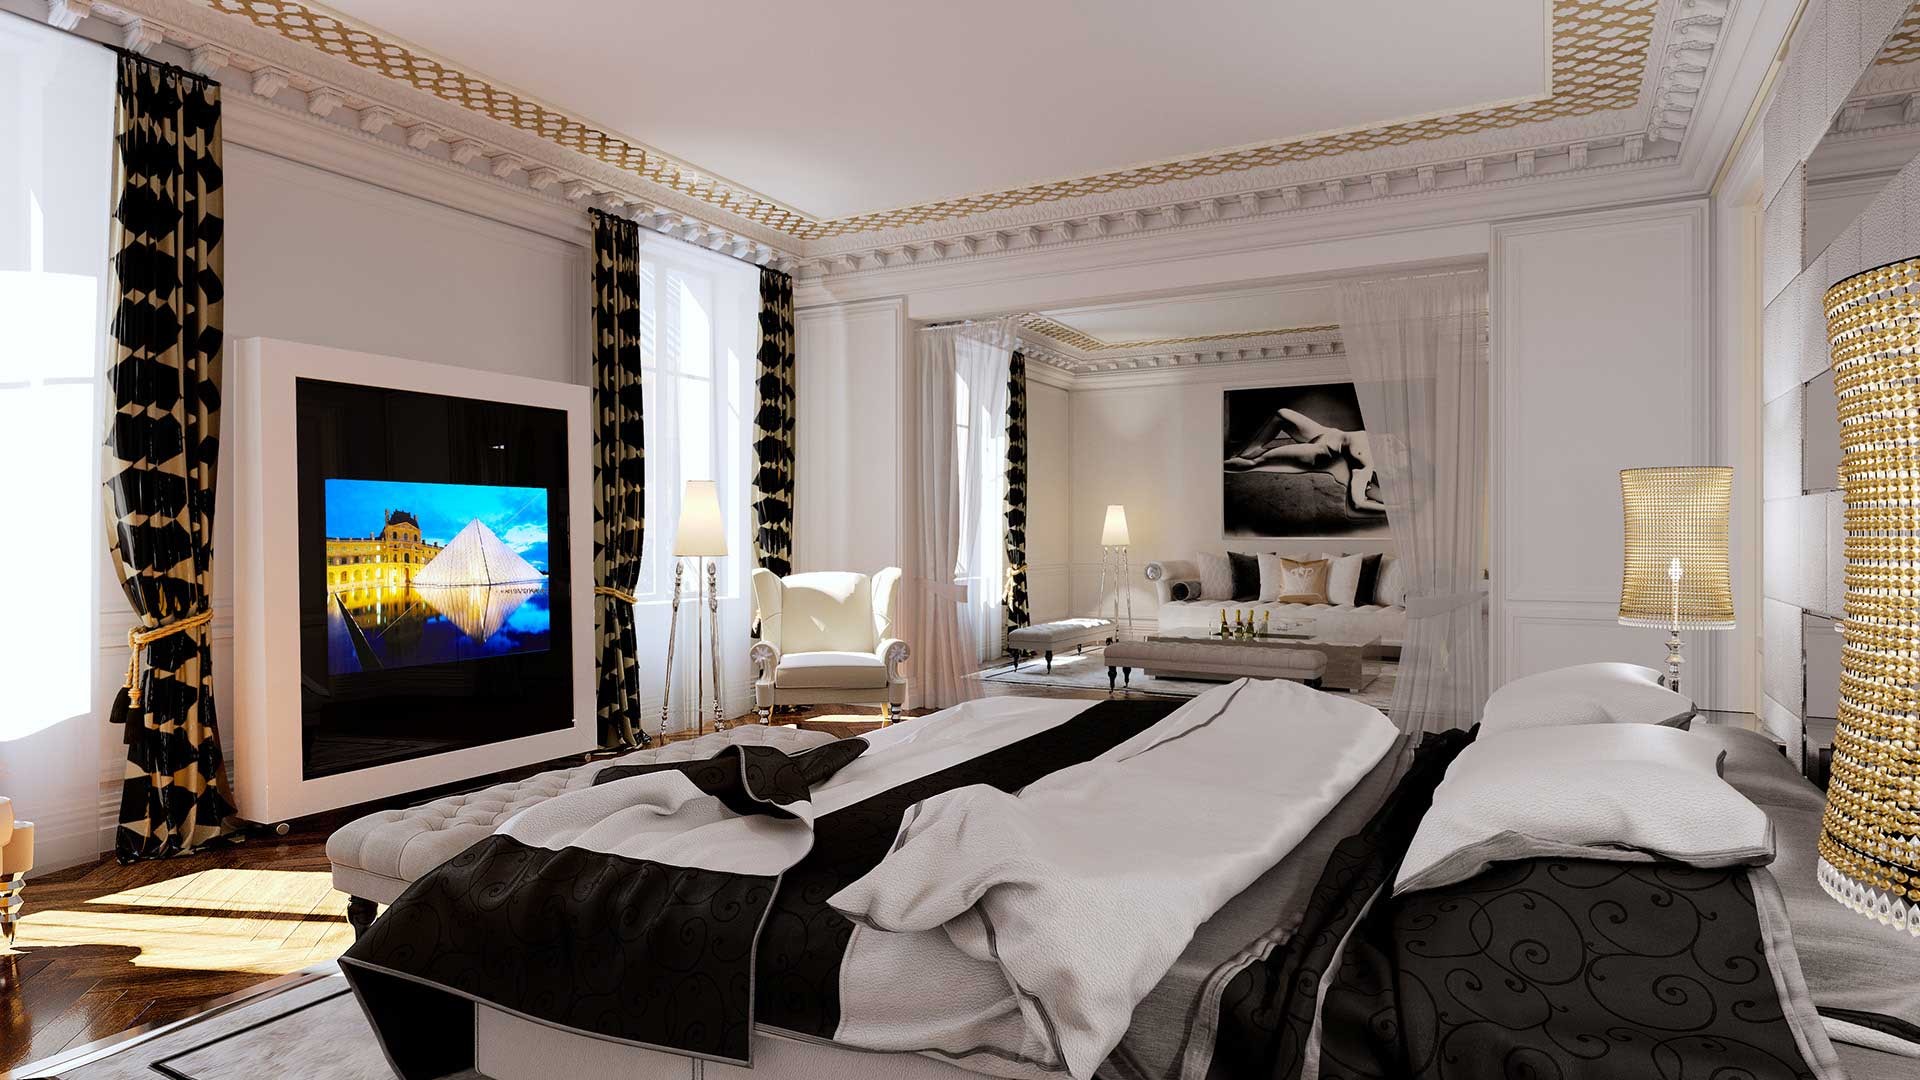 Agency creation 3D visuals for an architectural project : 3D photo apartment Haussmann